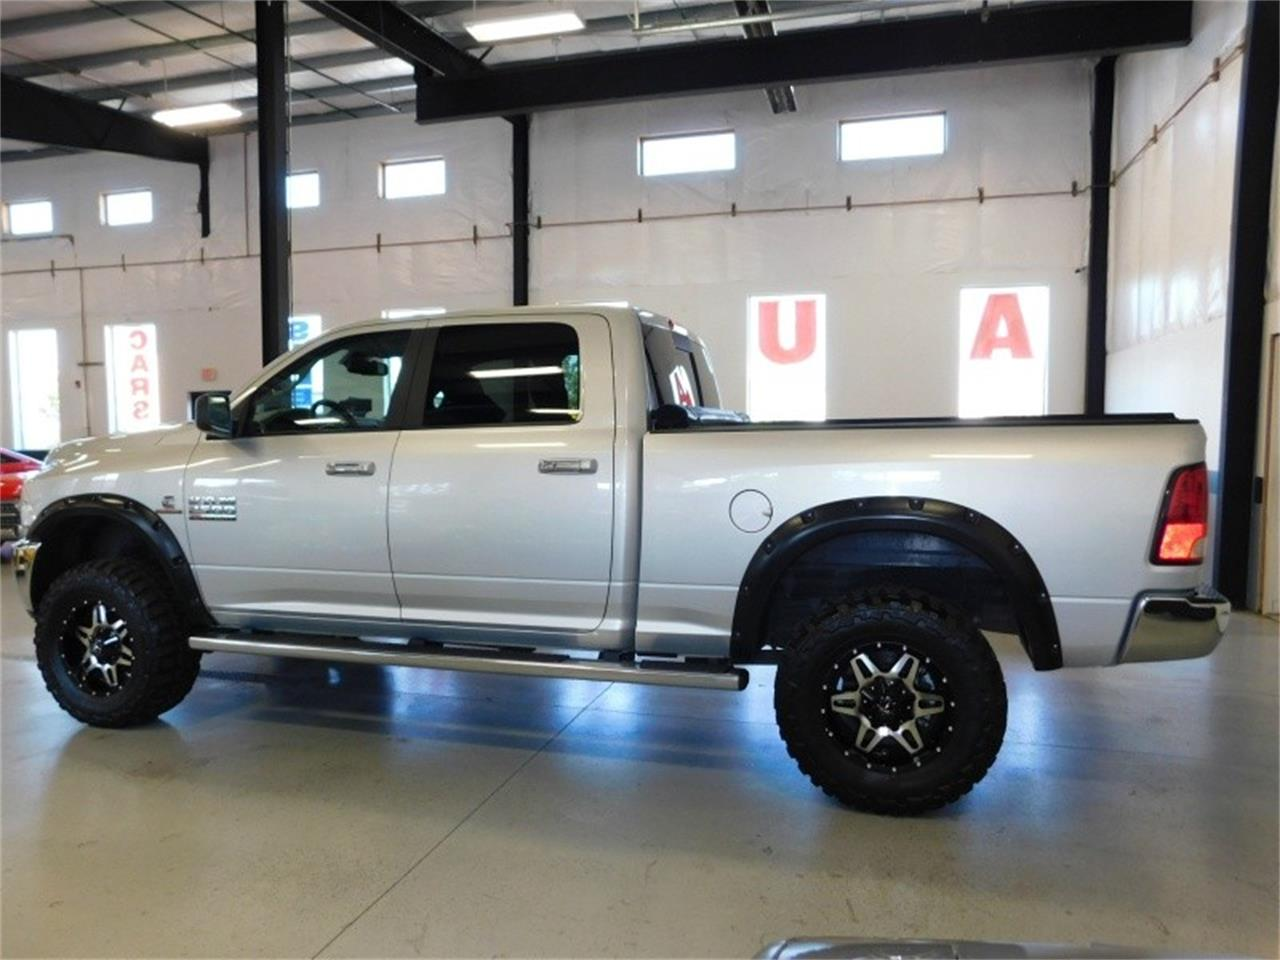 2015 Dodge Ram 2500 (CC-1248894) for sale in Bend, Oregon